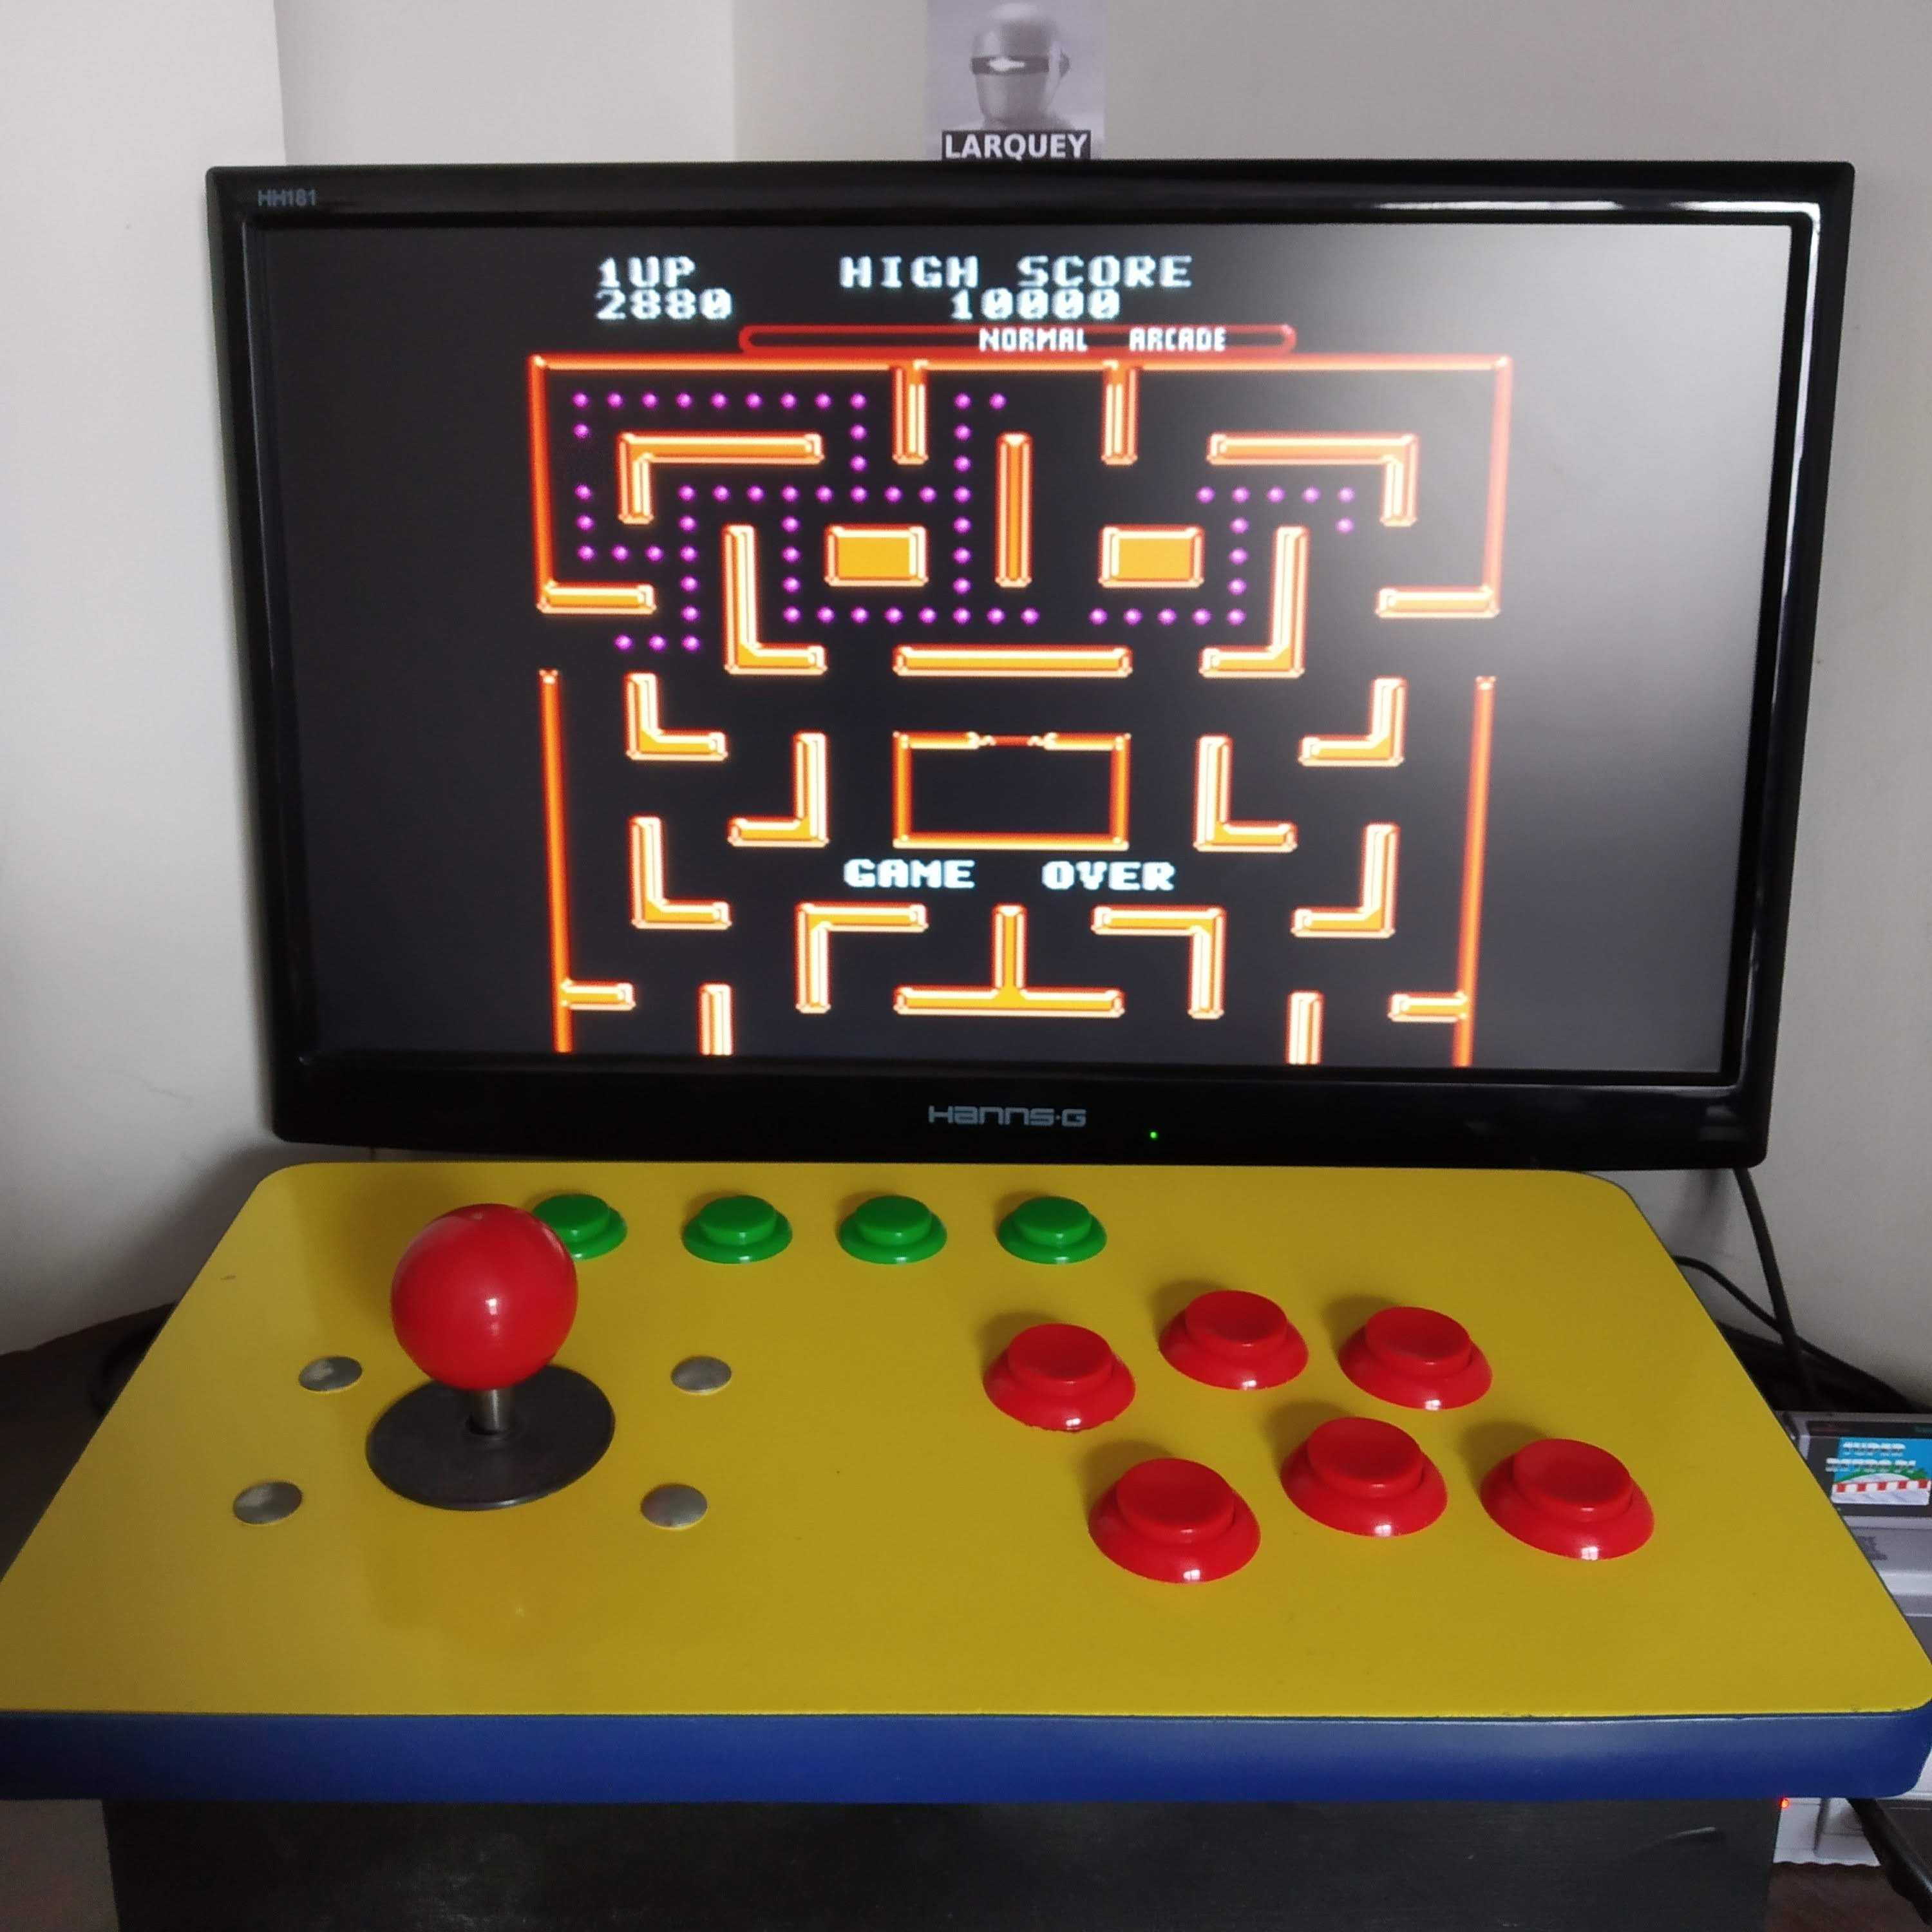 Larquey: Ms. Pac-Man [Off/ Normal/ Arcade/ Level 7 Start] (SNES/Super Famicom Emulated) 2,880 points on 2020-08-16 10:01:57